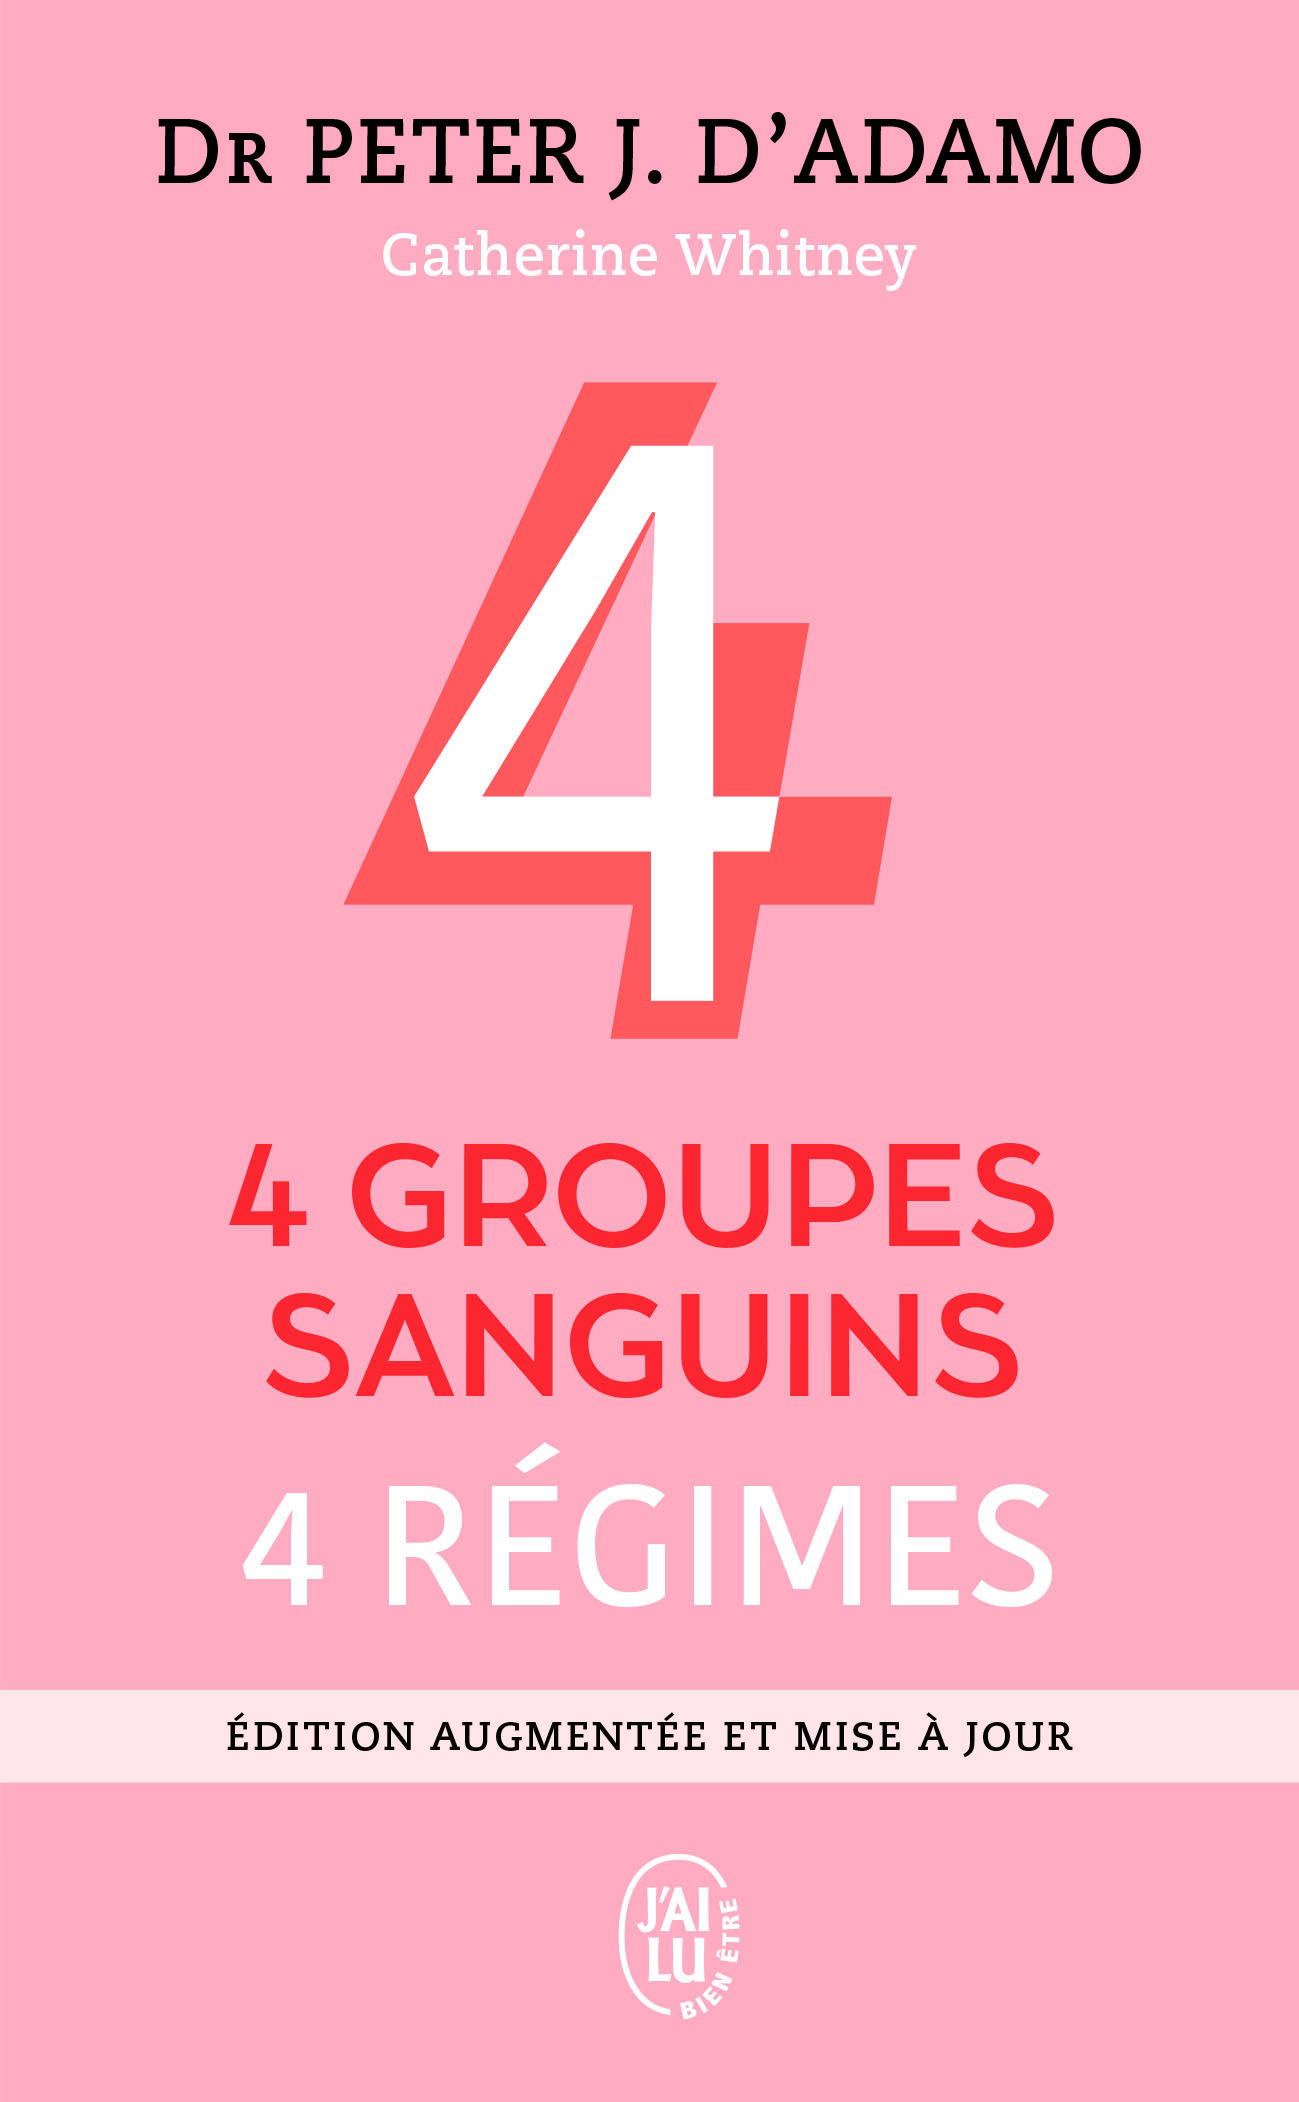 4 GROUPES SANGUINS, 4 REGIMES